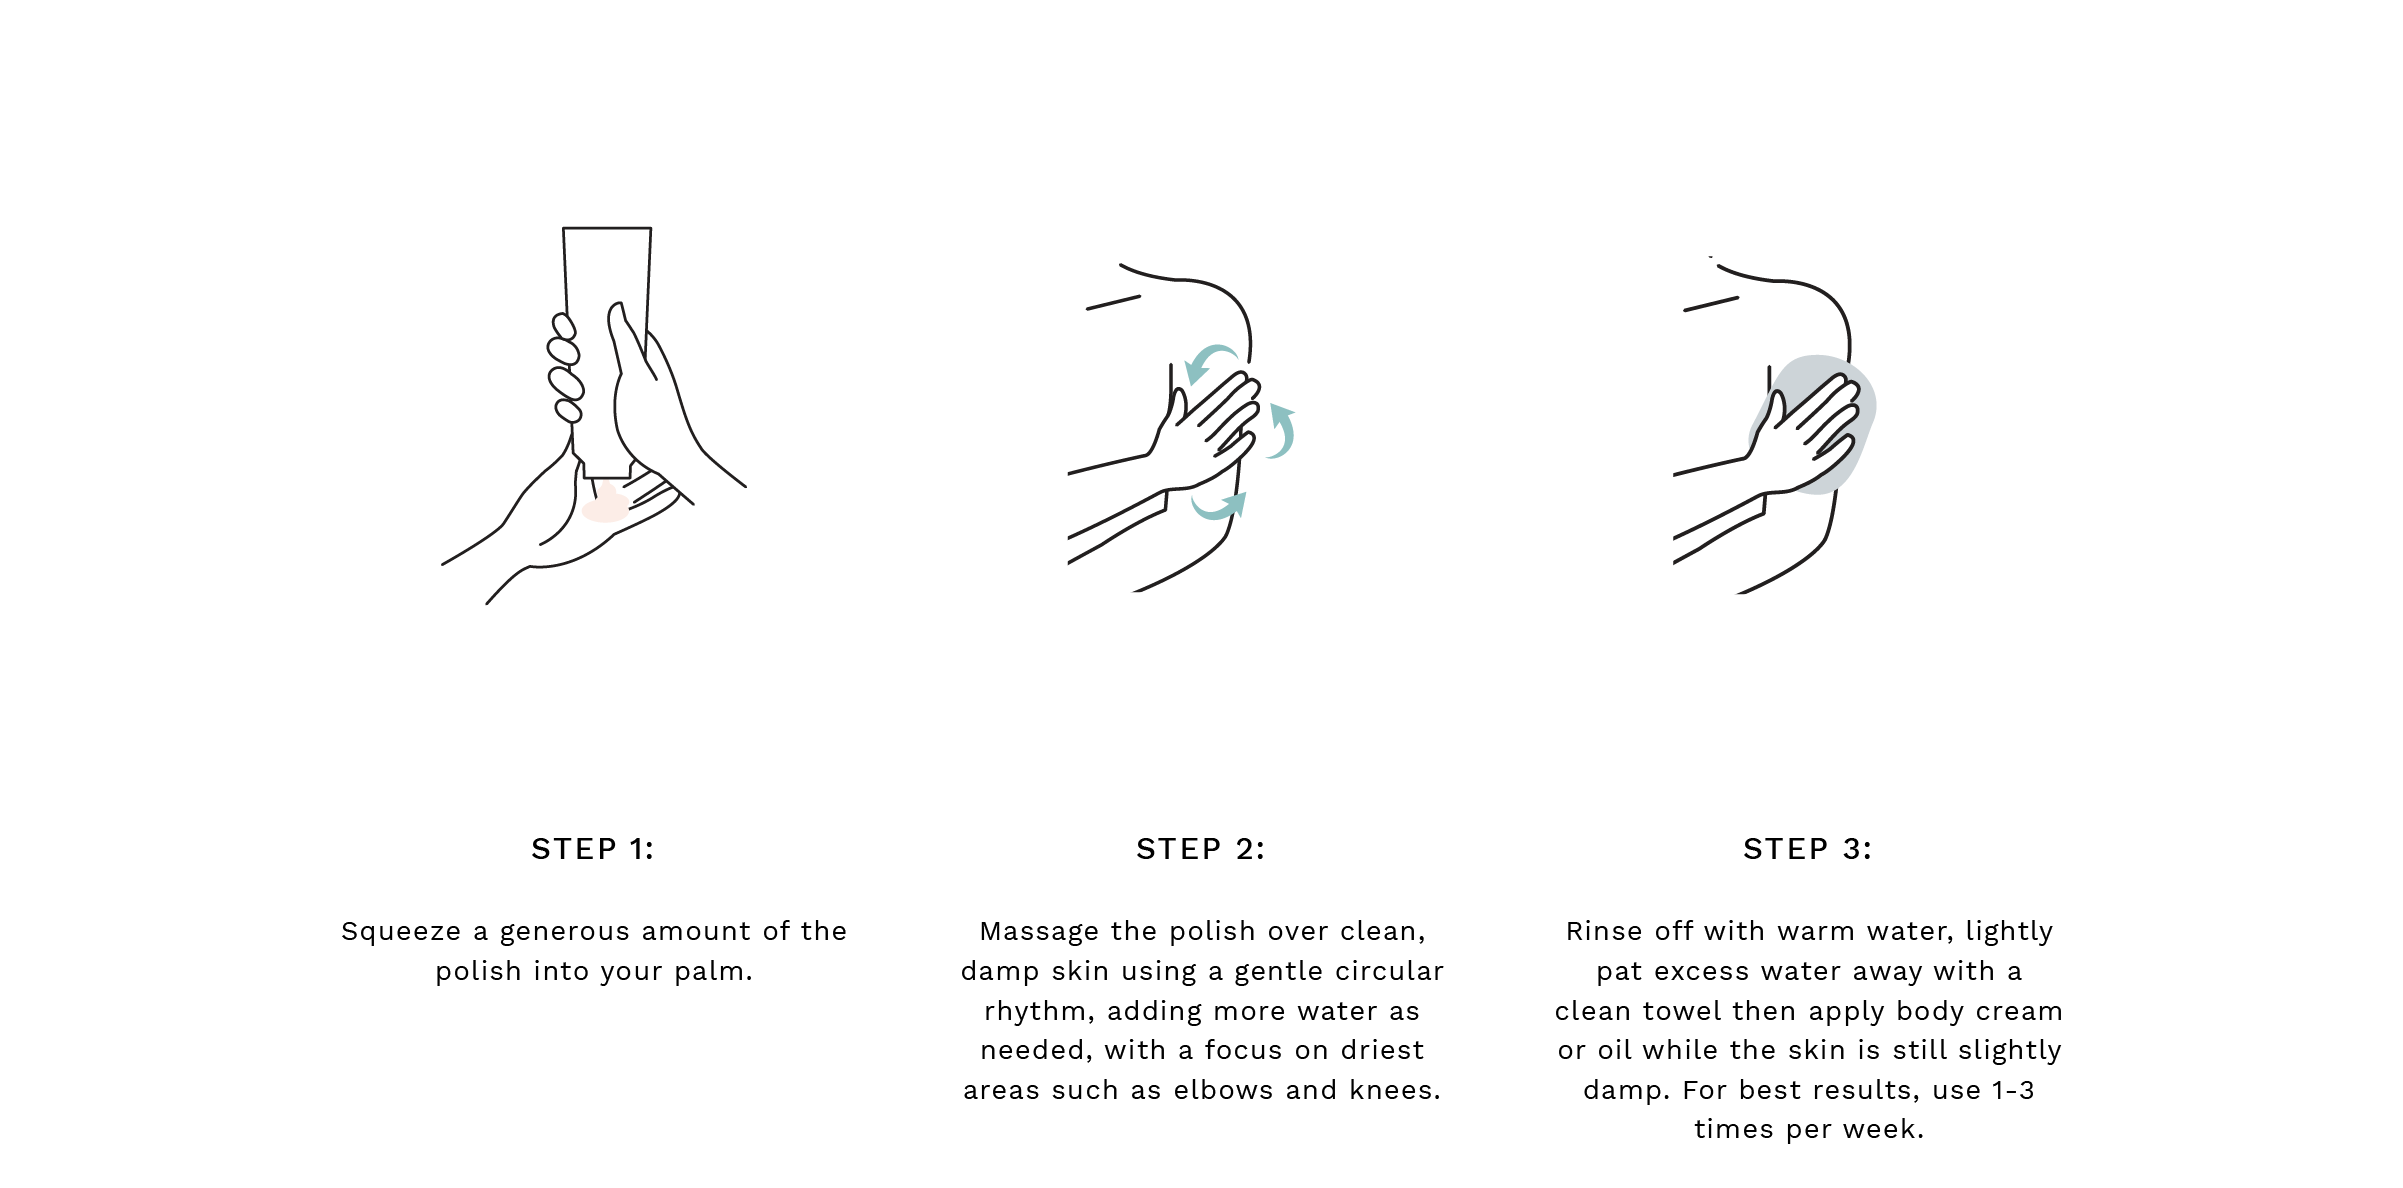 Step 1: Squeeze a generous amount of the polish into your palm. Step 2: Massage the polish over clean, damp skin using a gentle circular rhythm, adding more water as needed, with a focus on driest areas such as elbows and knees. Step 3: Rinse off with warm water, lightly pat excess water away with a clean towel then apply body cream or oil while the skin is still slightly damp. For best results, use 1-3 times per week.